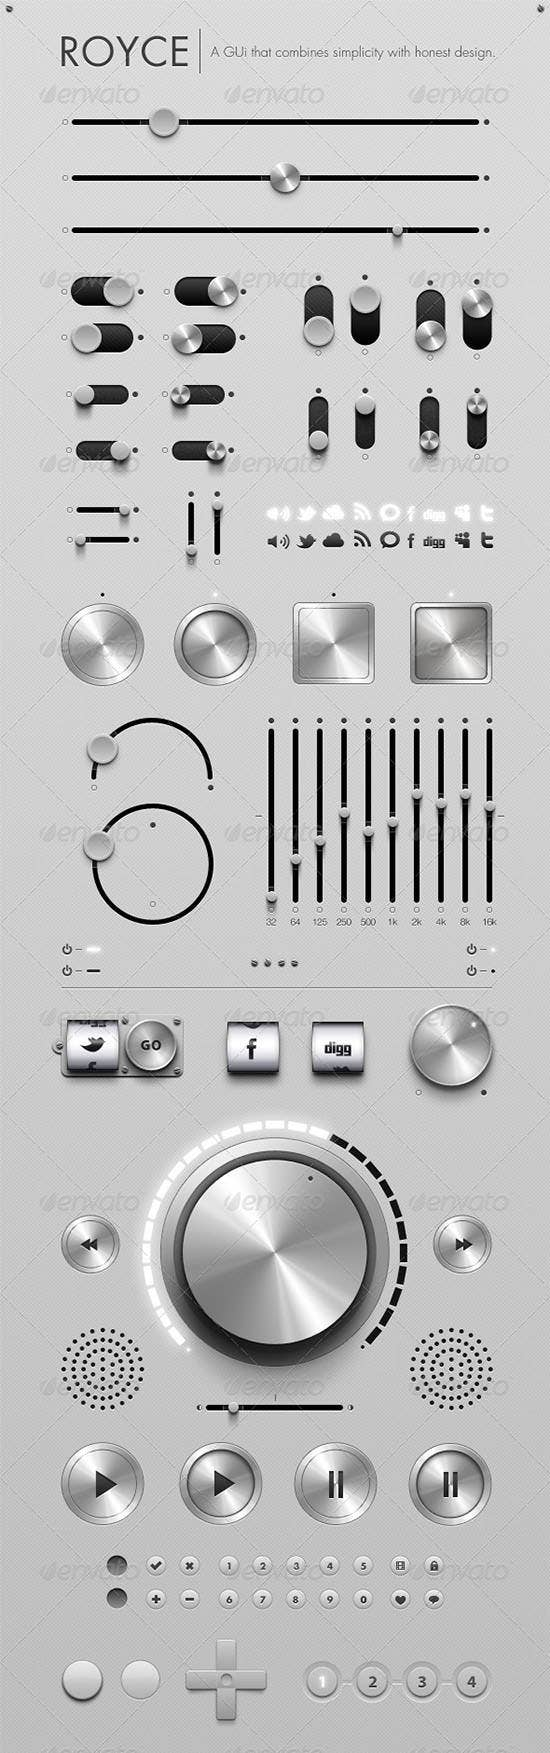 royce graphical user interface design